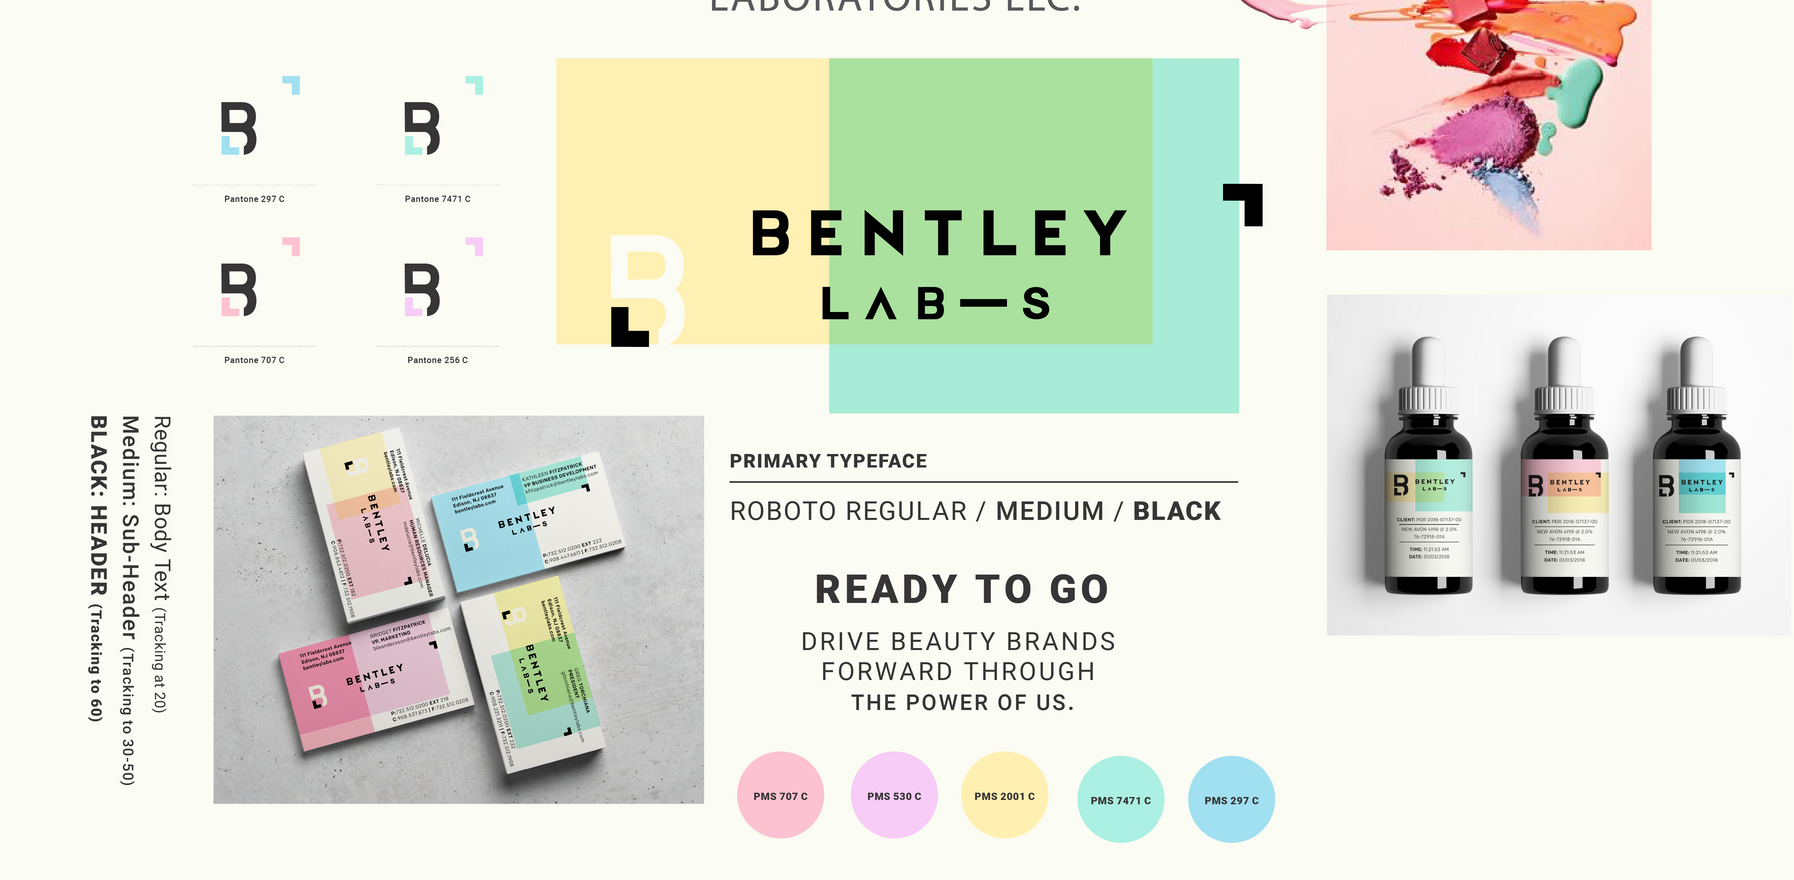 Bentley Lab-S  (Click to View)